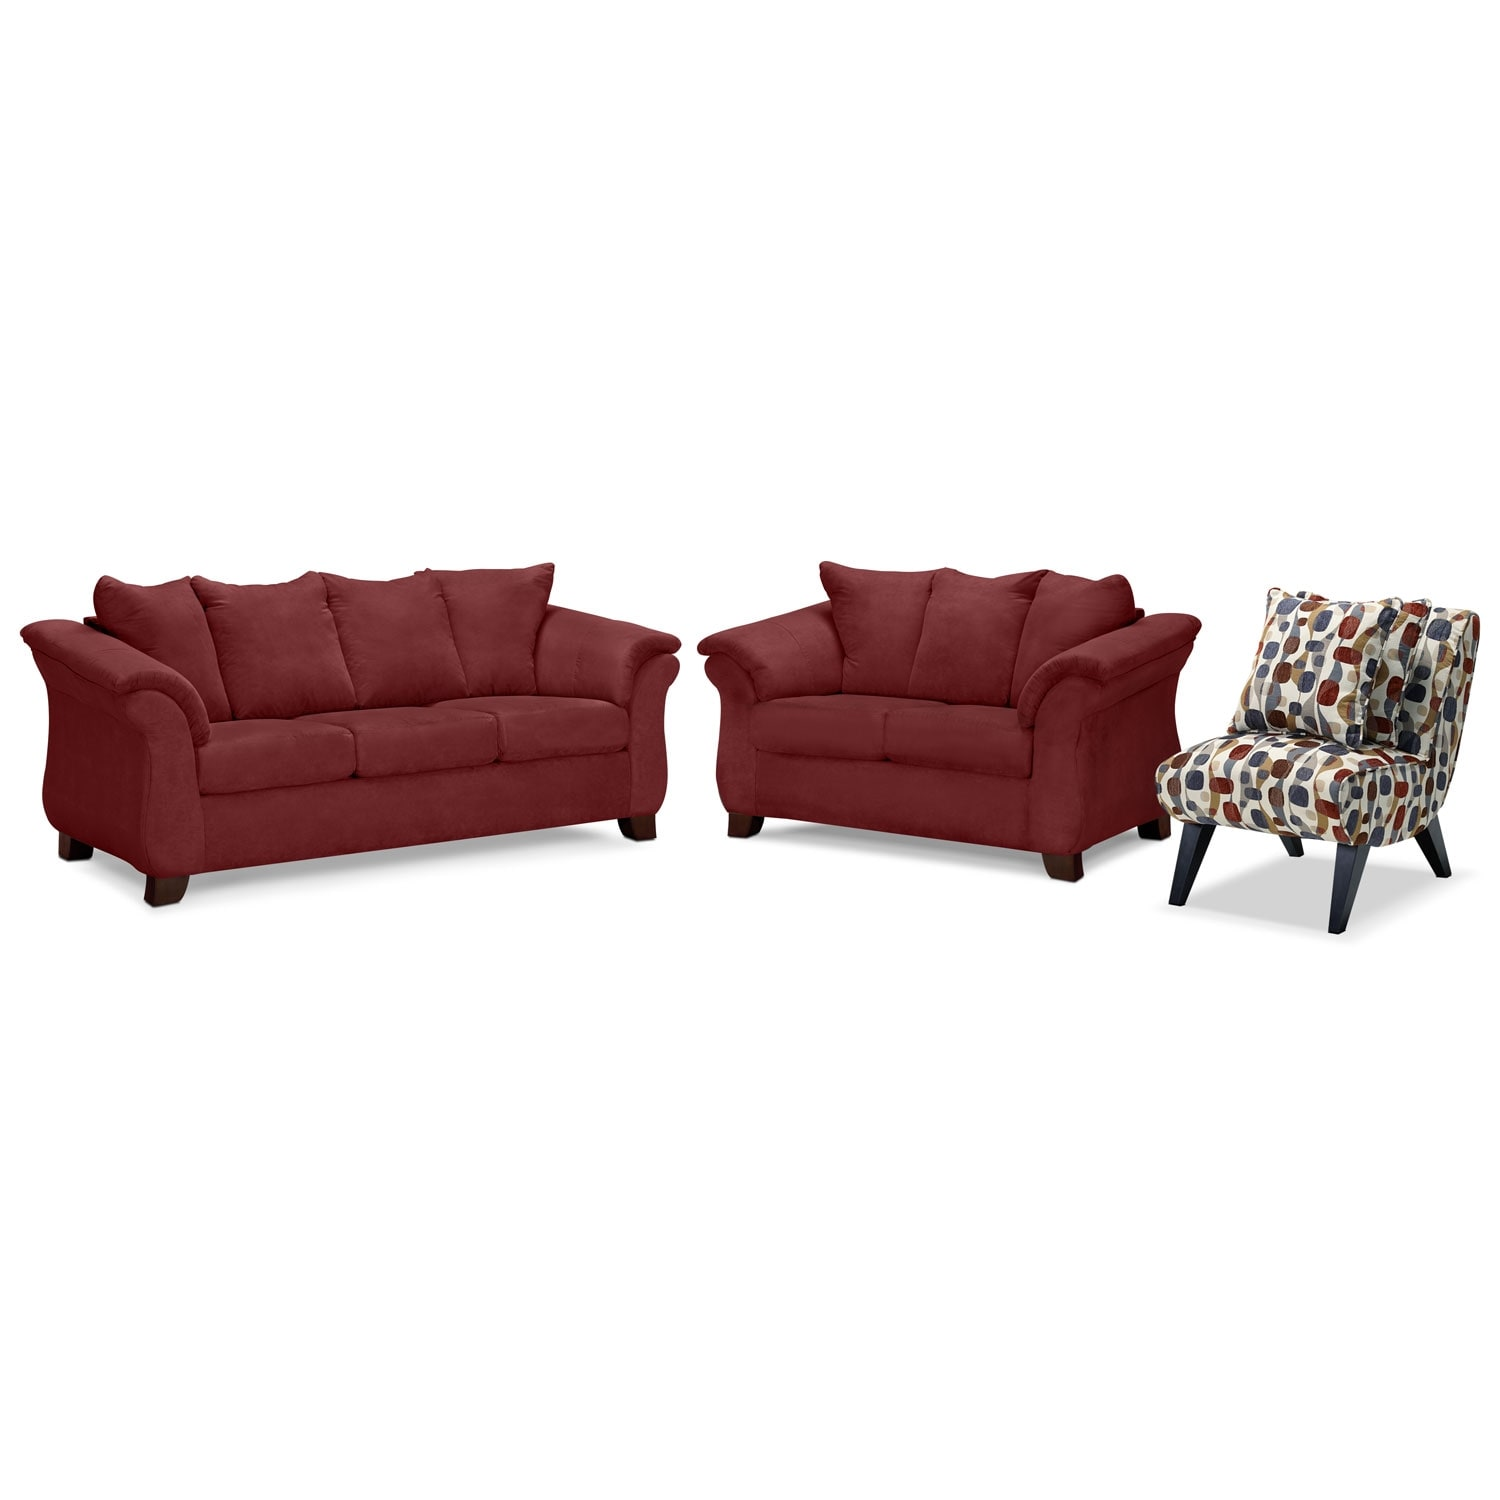 adrian sofa loveseat and accent chair set red value city